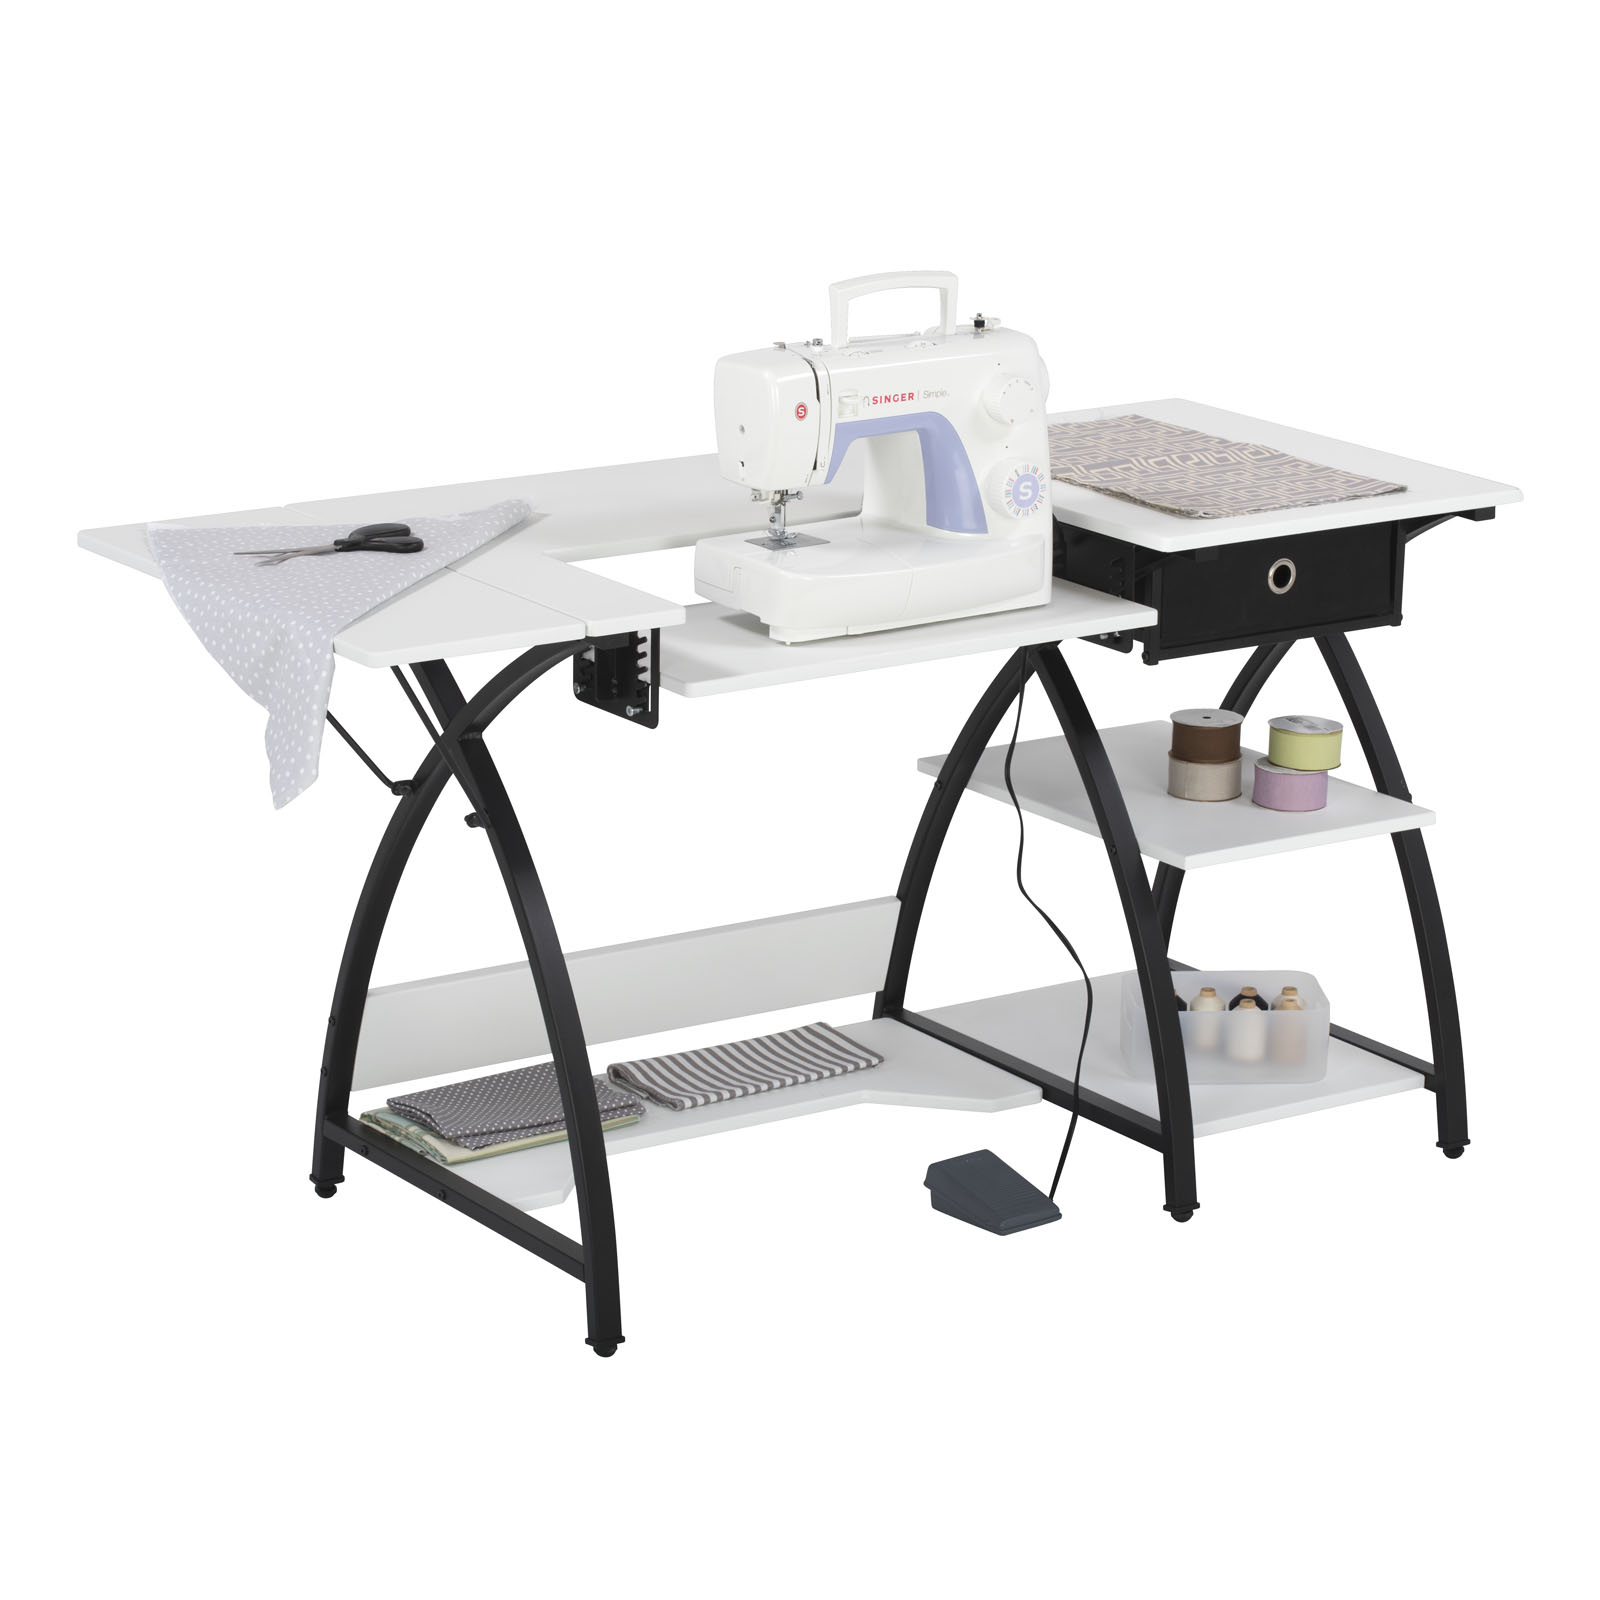 Comet Hobby / Sewing Machine Desk in Black / White – Item ...